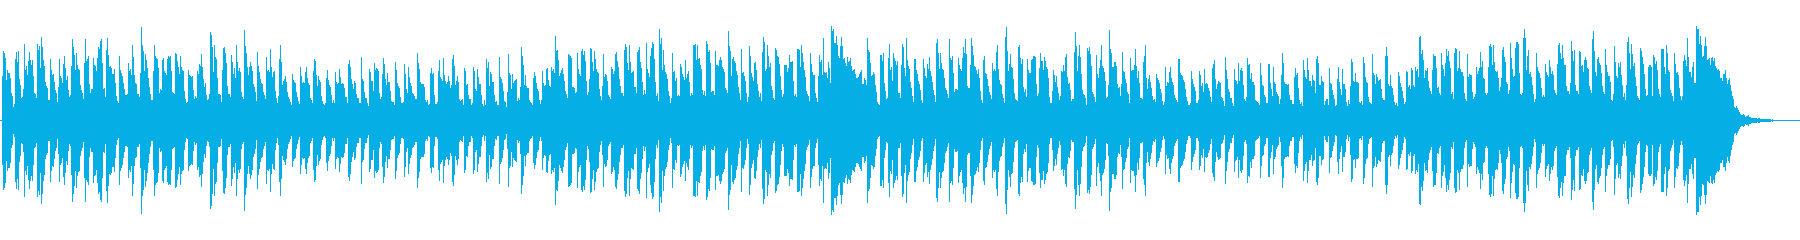 Ghibli style _ anime _ children _ picture book _ cuckoo clock's reproduced waveform